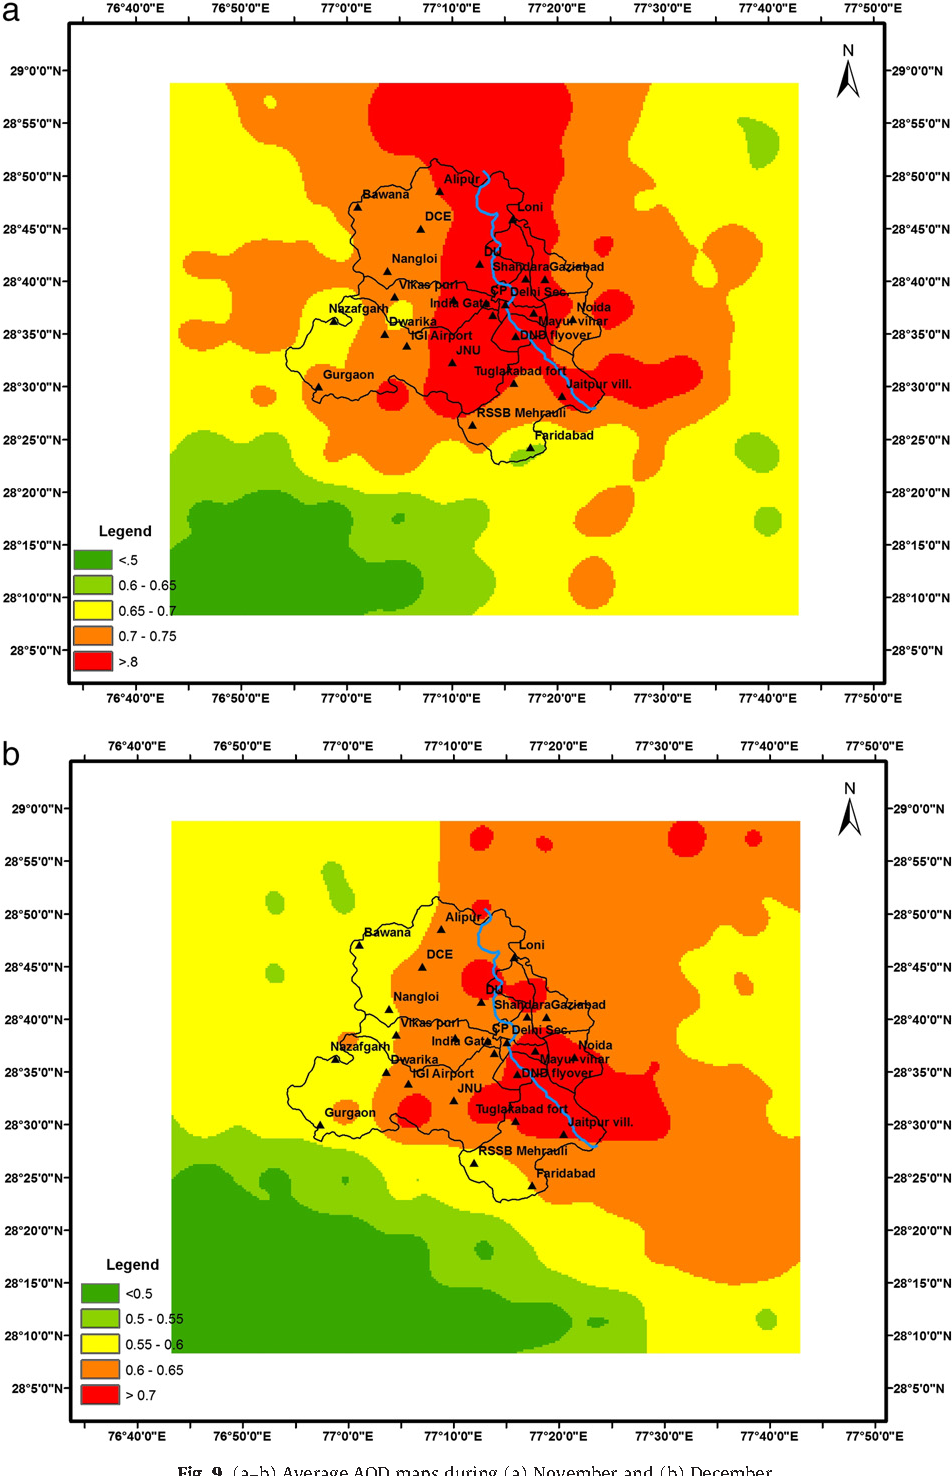 Fig. 9. (a–b) Average AOD maps during (a) November and (b) December.